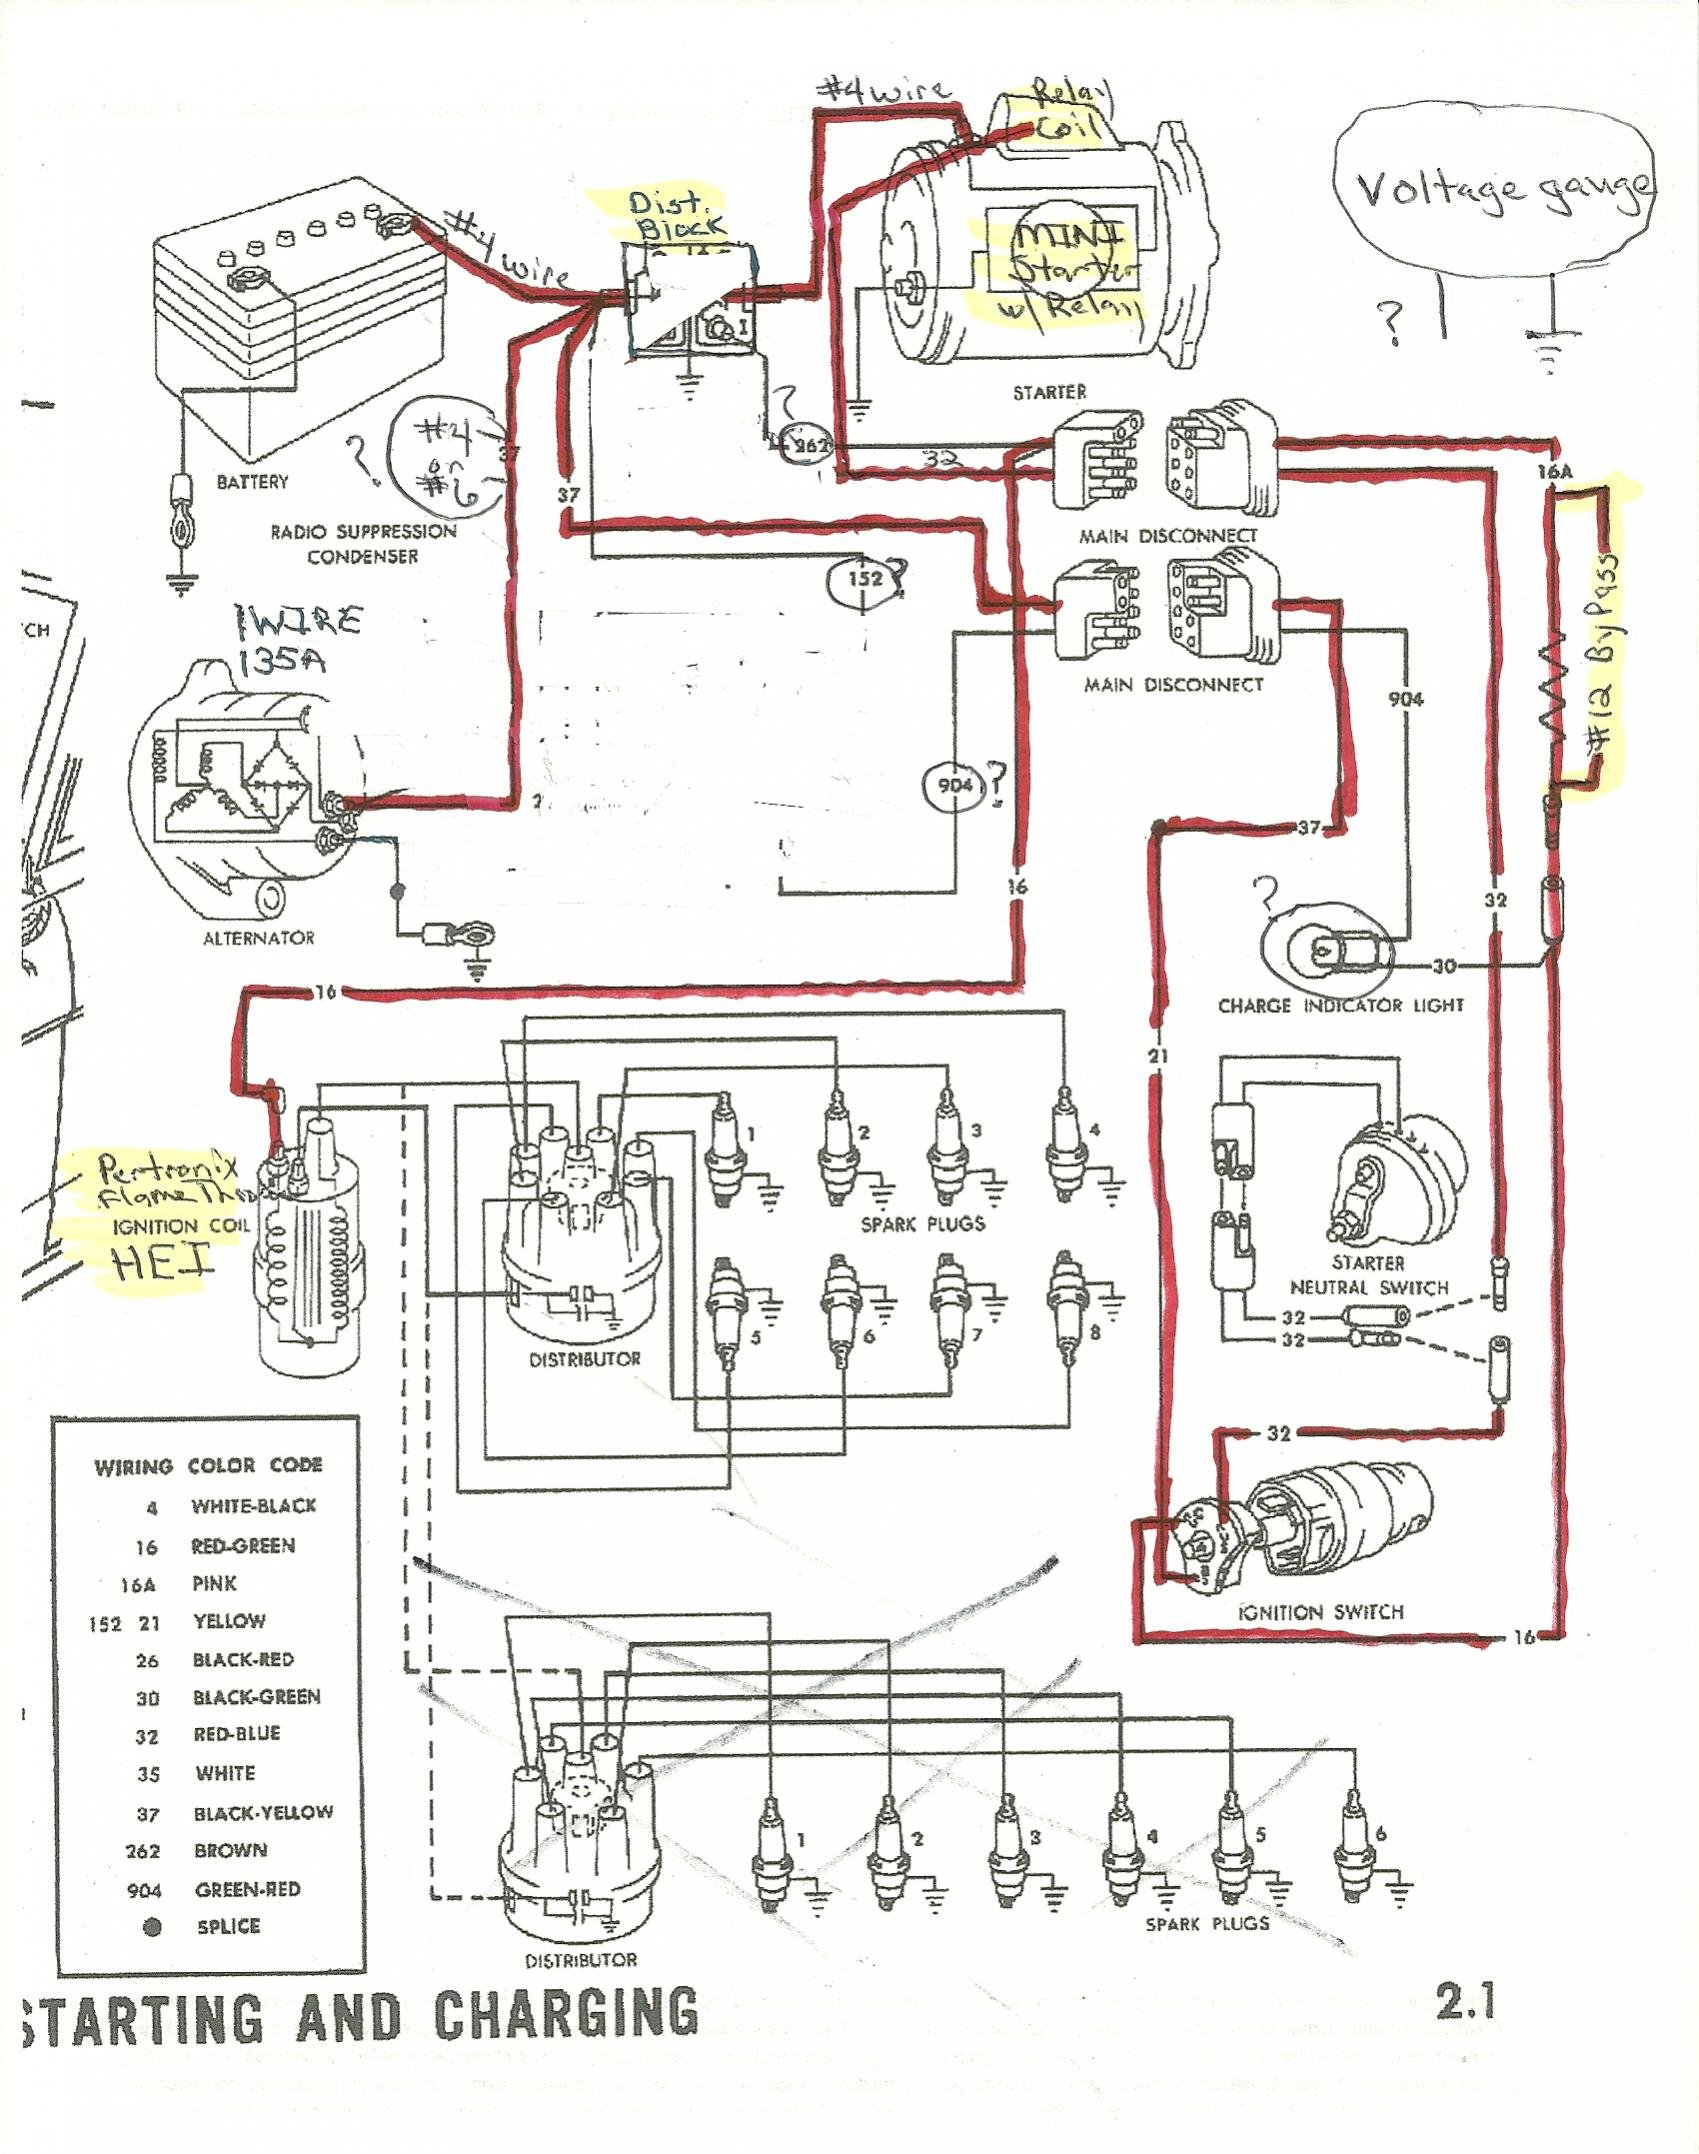 DIAGRAM] Wiring Diagram 1965 Mustang Alternator FULL Version HD Quality Mustang  Alternator - DIAGRAMCHART.ERACLEATURISMO.ITdiagramchart.eracleaturismo.it